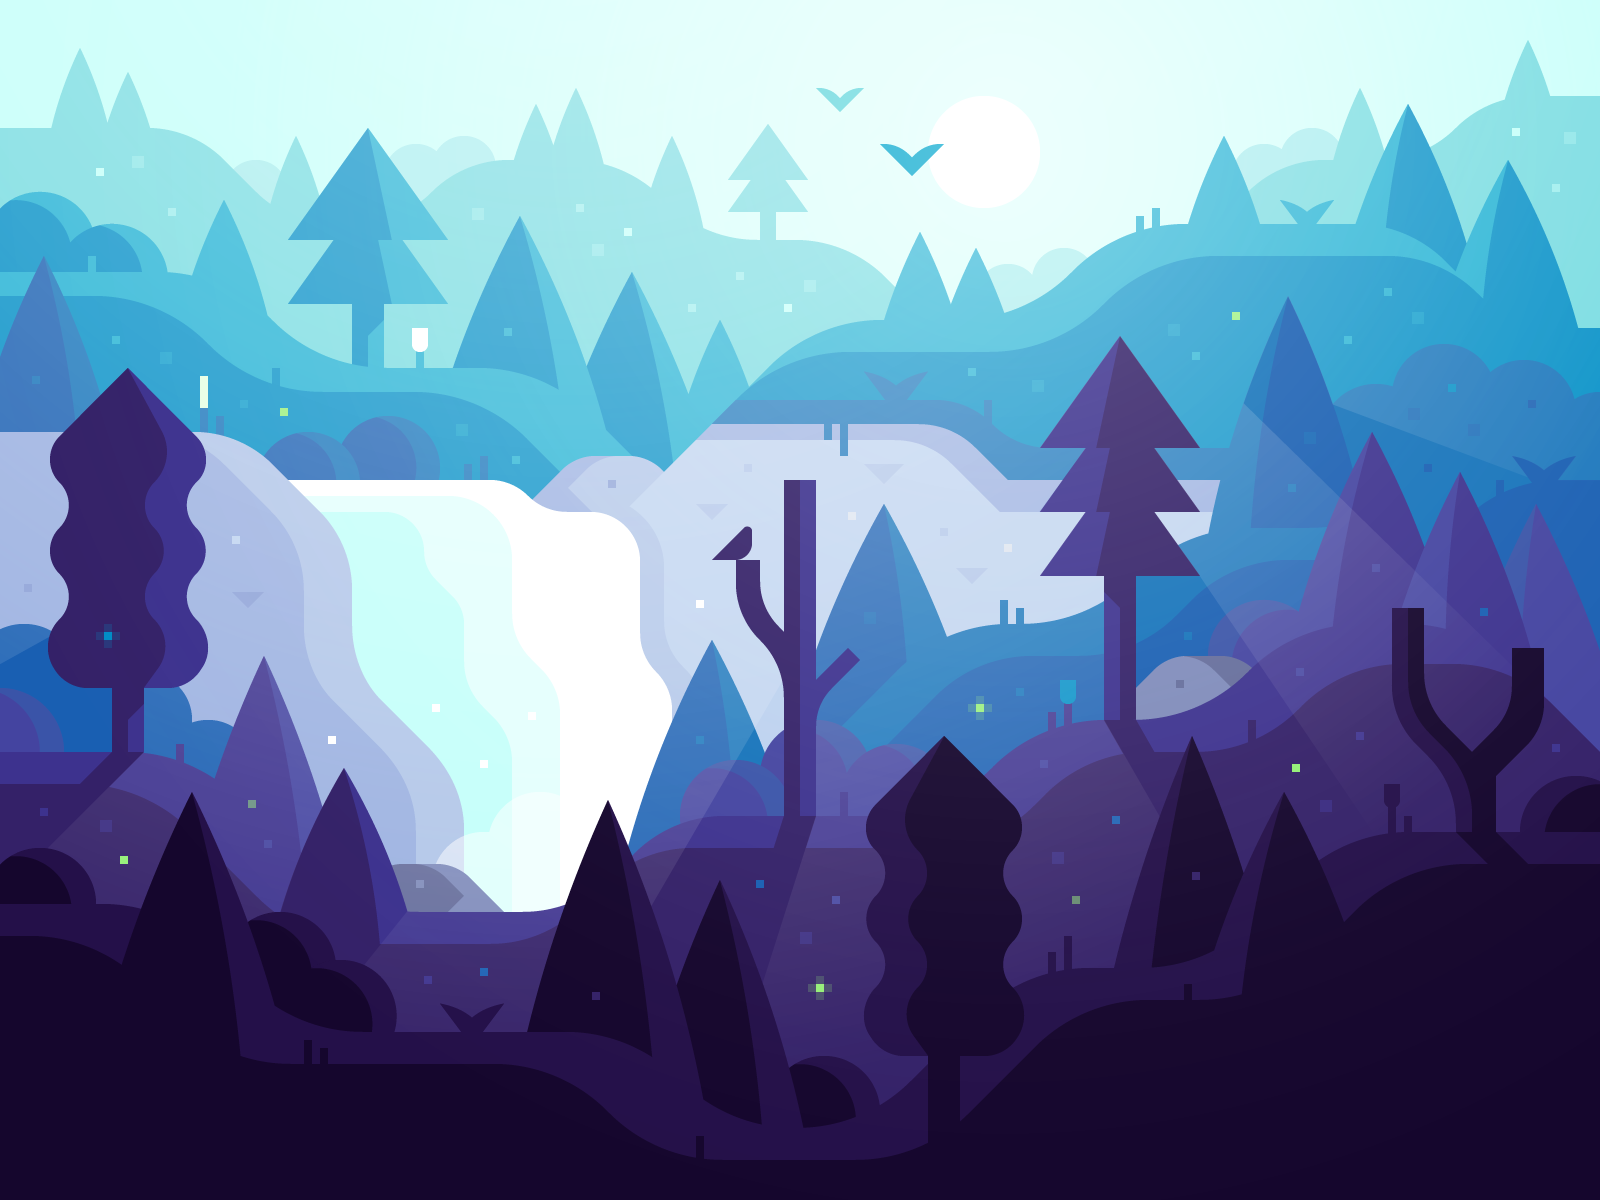 magic-forest-v3-alex-pasquarella_4x.png